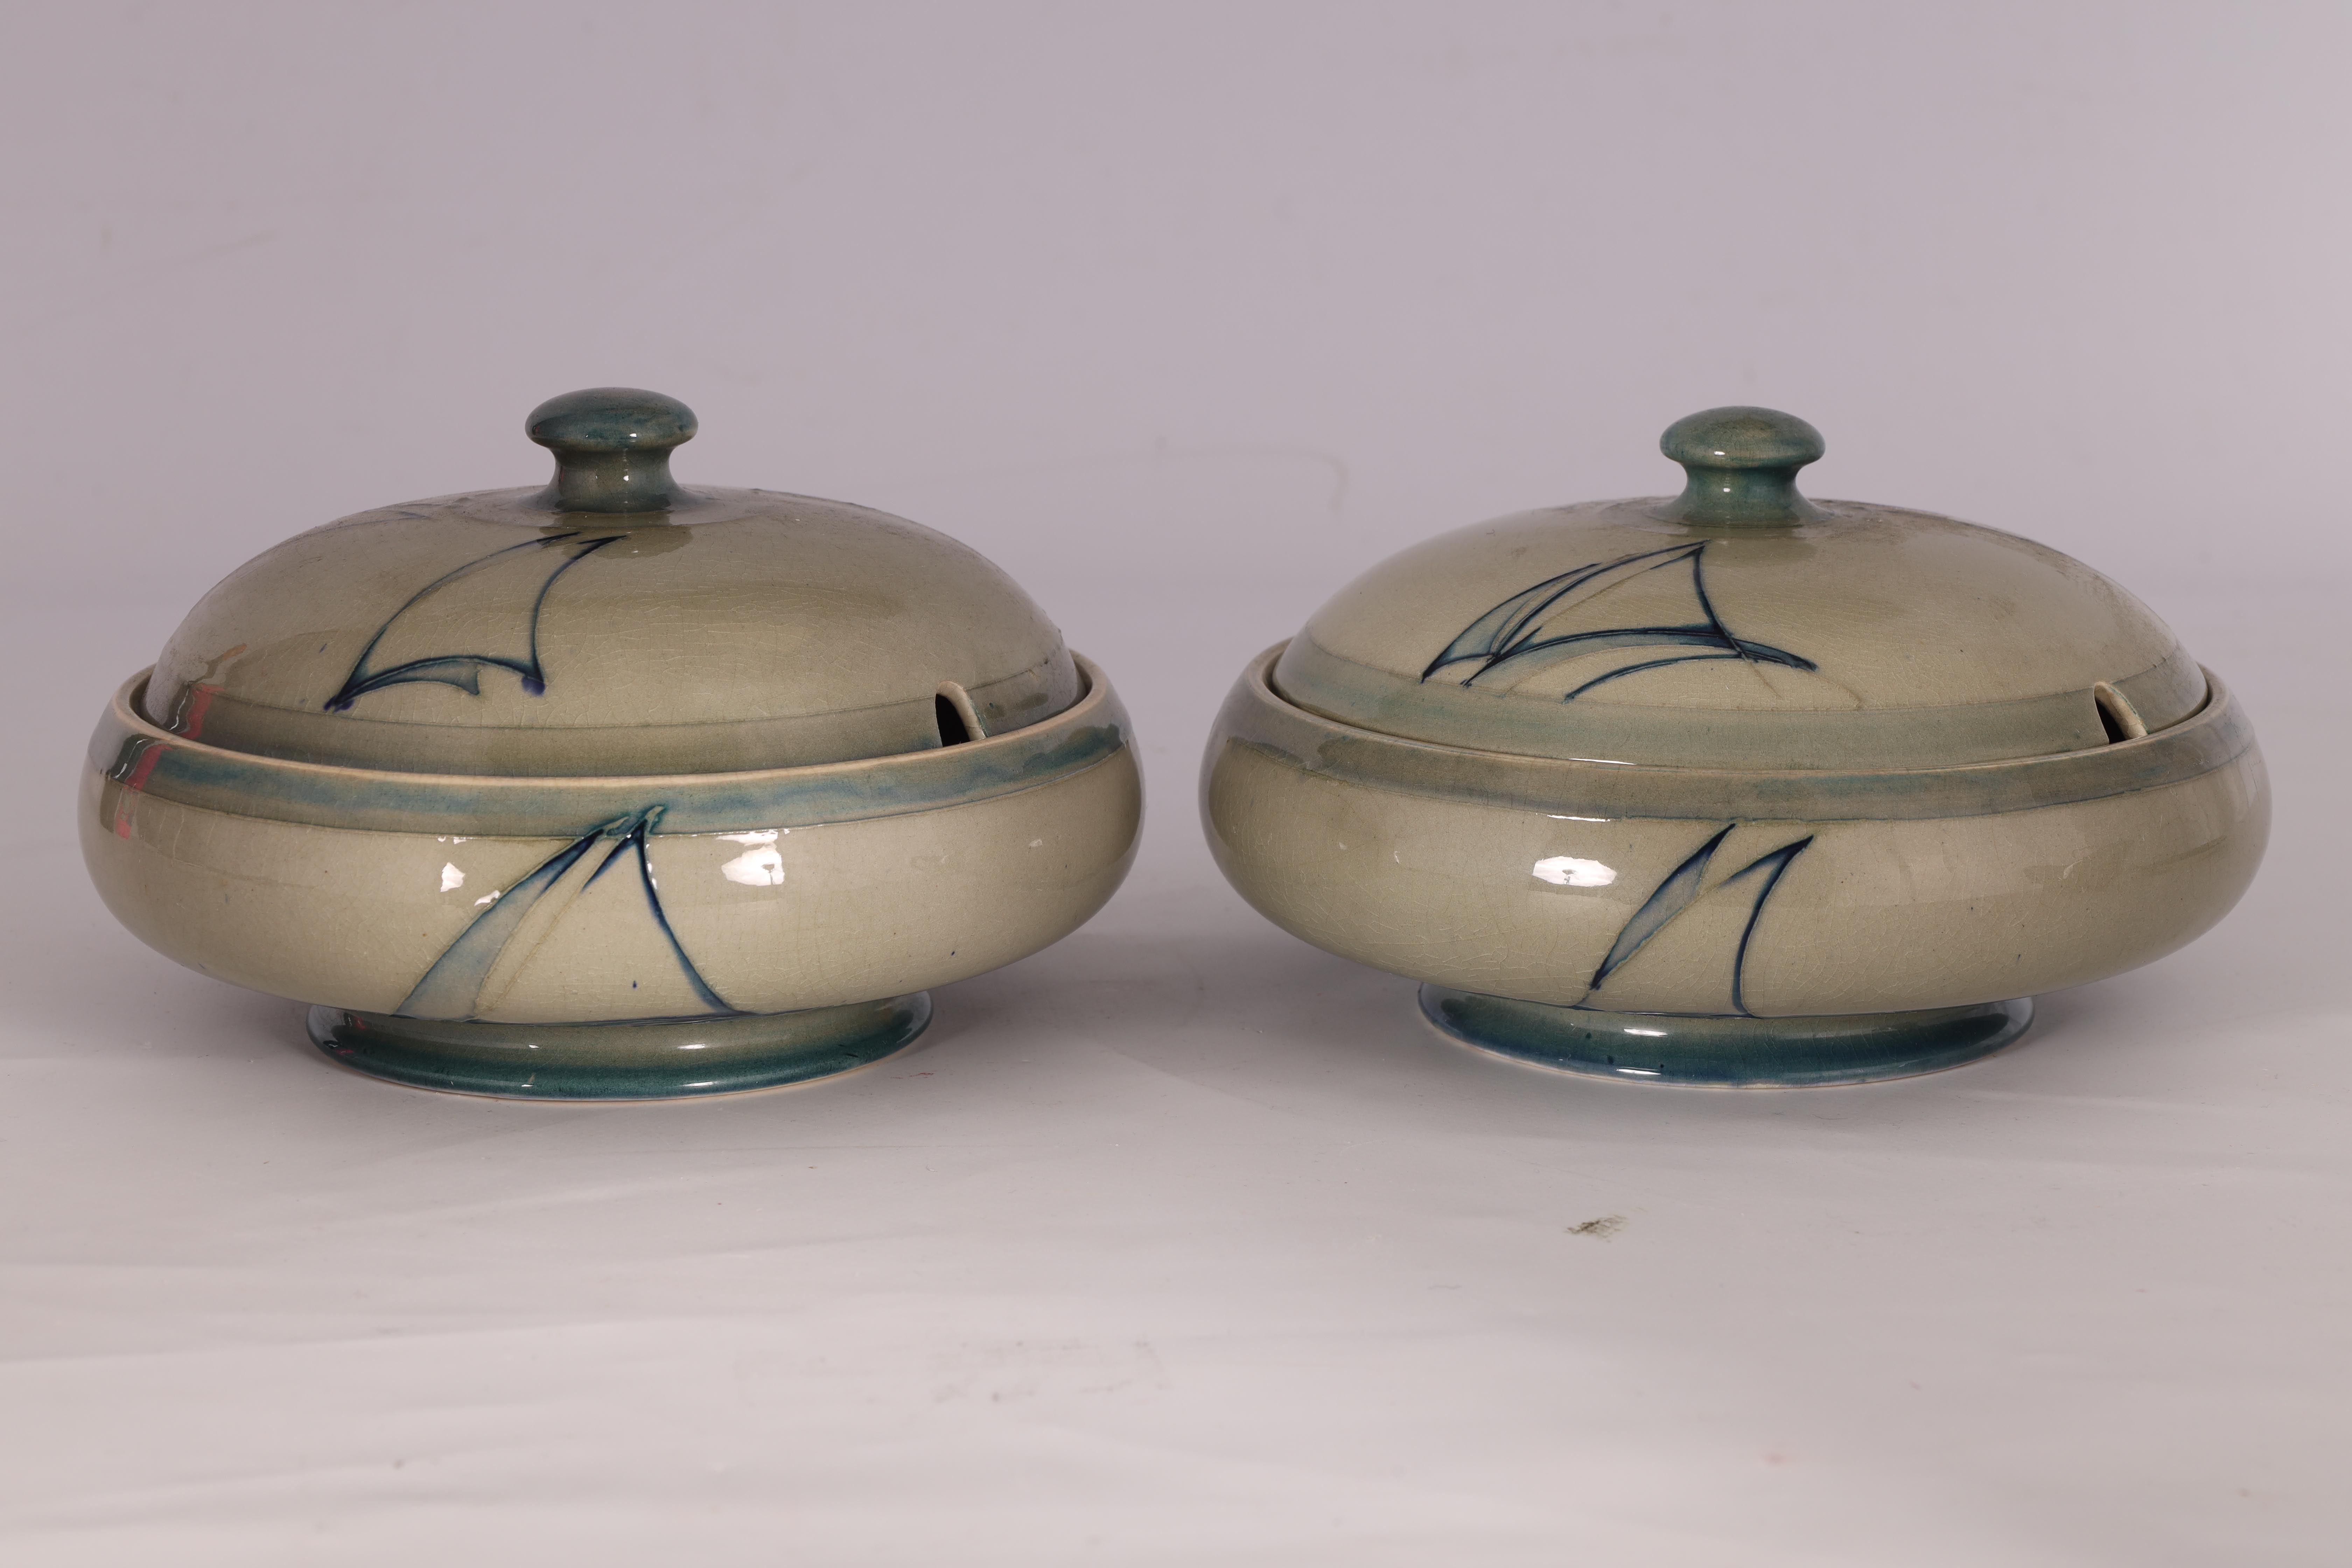 A PAIR OF MOORCROFT LIDDED TABLE TUREENS decorated in the Yacht pattern on a celadon ground, 19. - Image 2 of 12